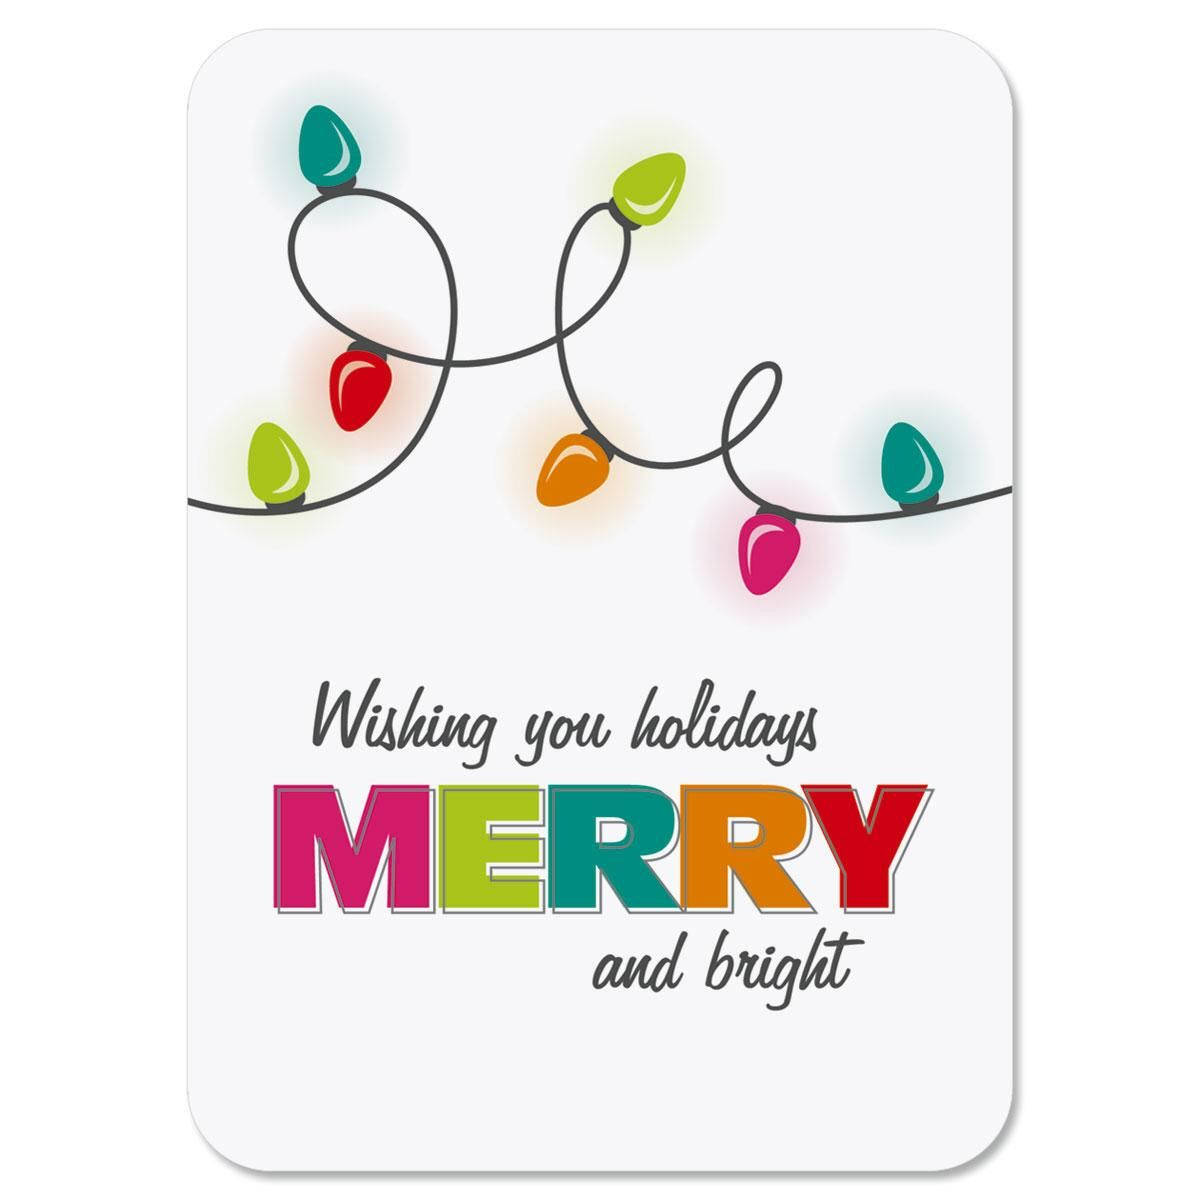 Christmas Lights Nonpersonalized Christmas Cards - Set of 72